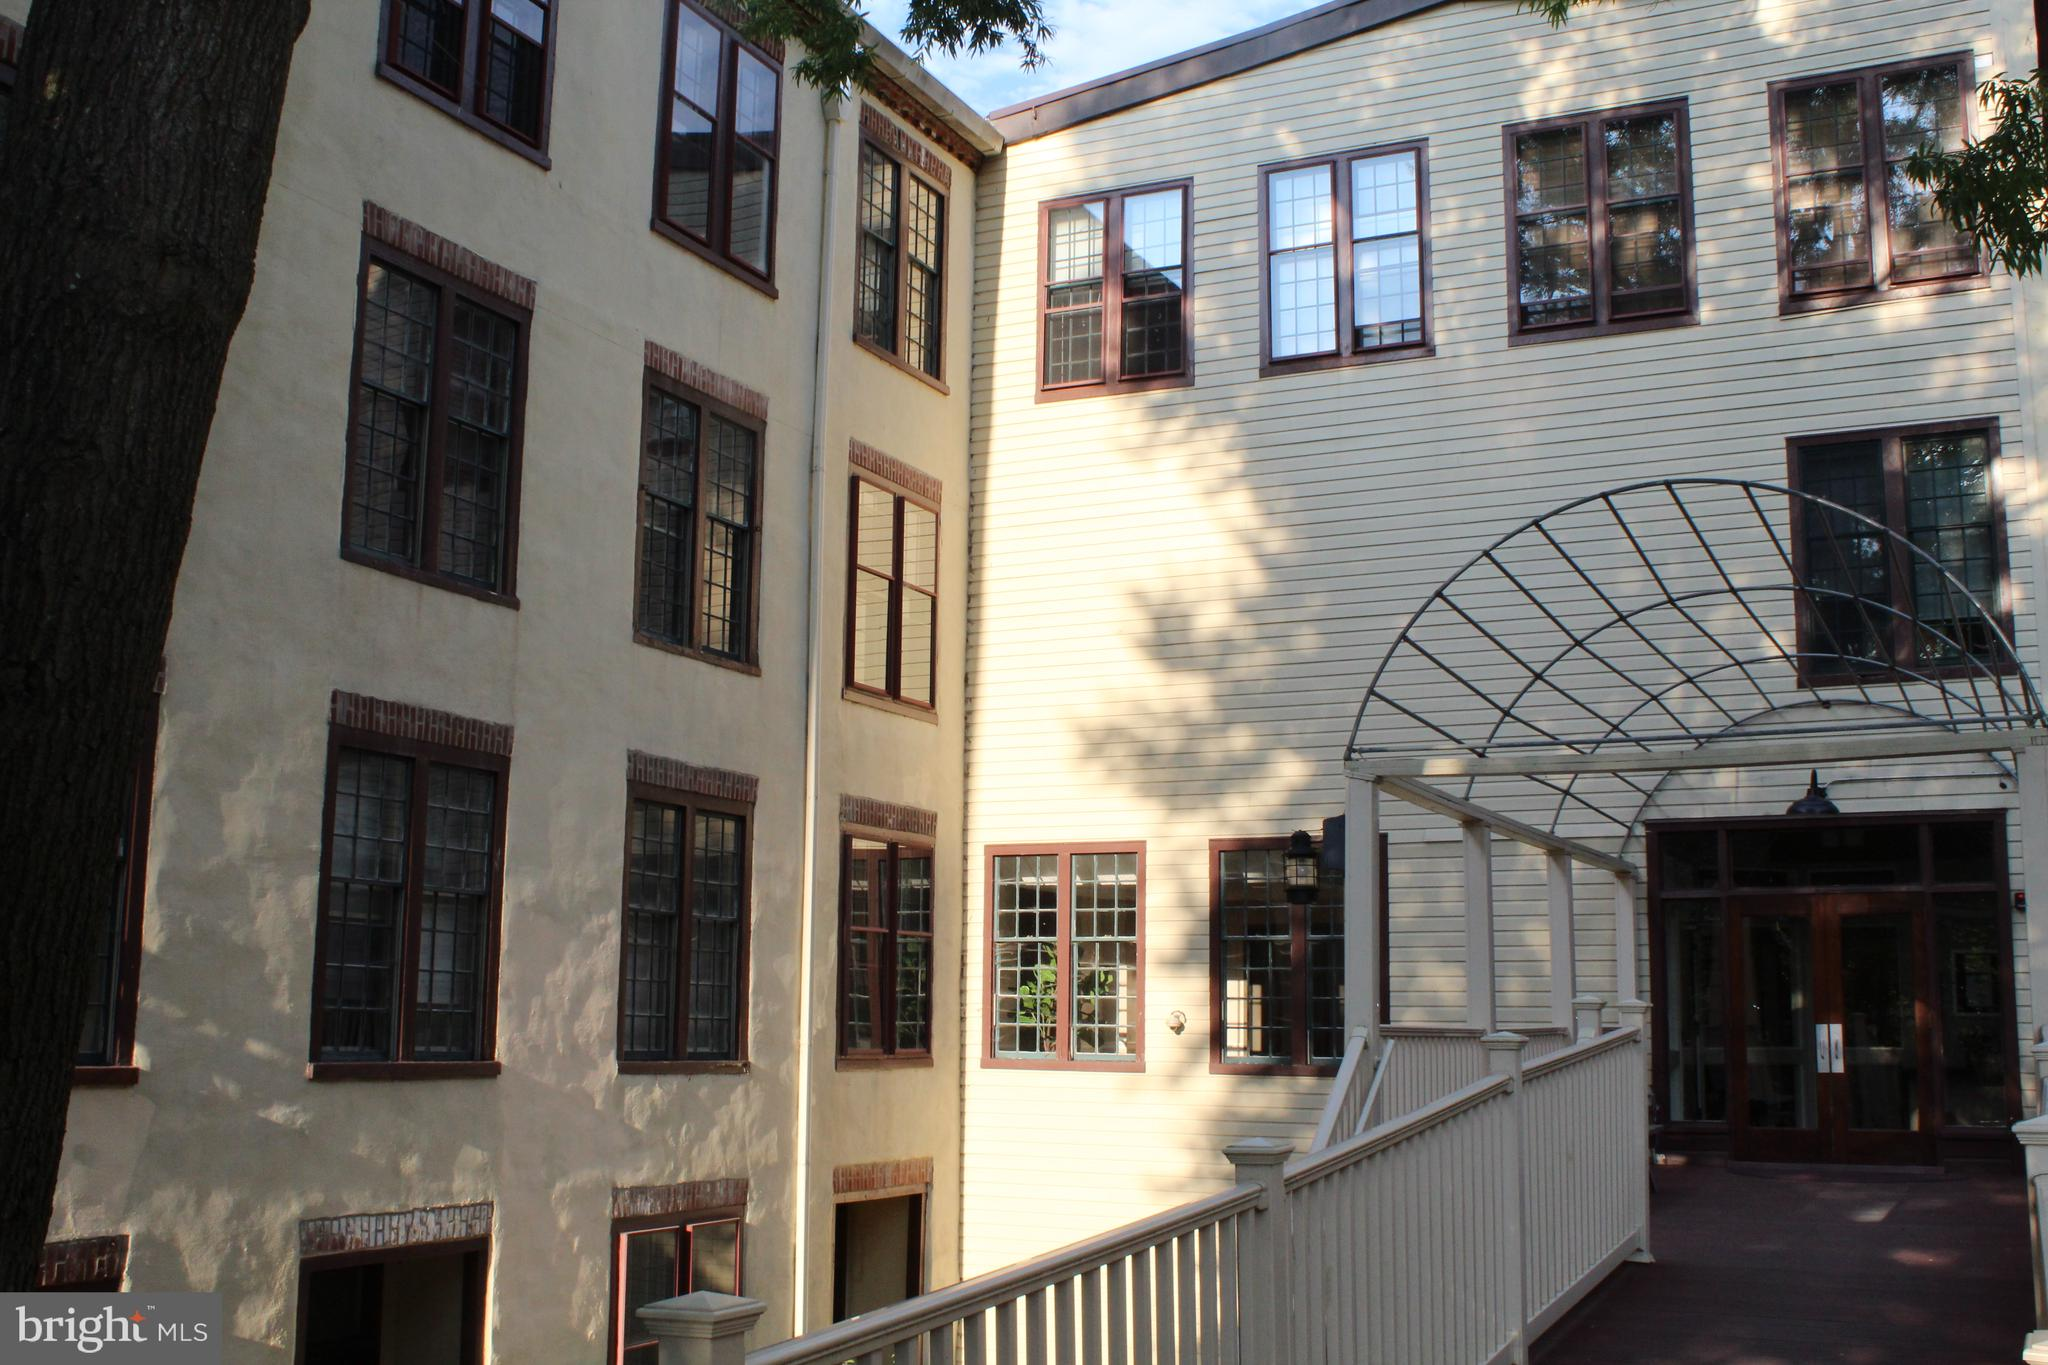 Bancroft Mills Condominiums is an historic old mill building repurposed as NYC-style loft condos.  A